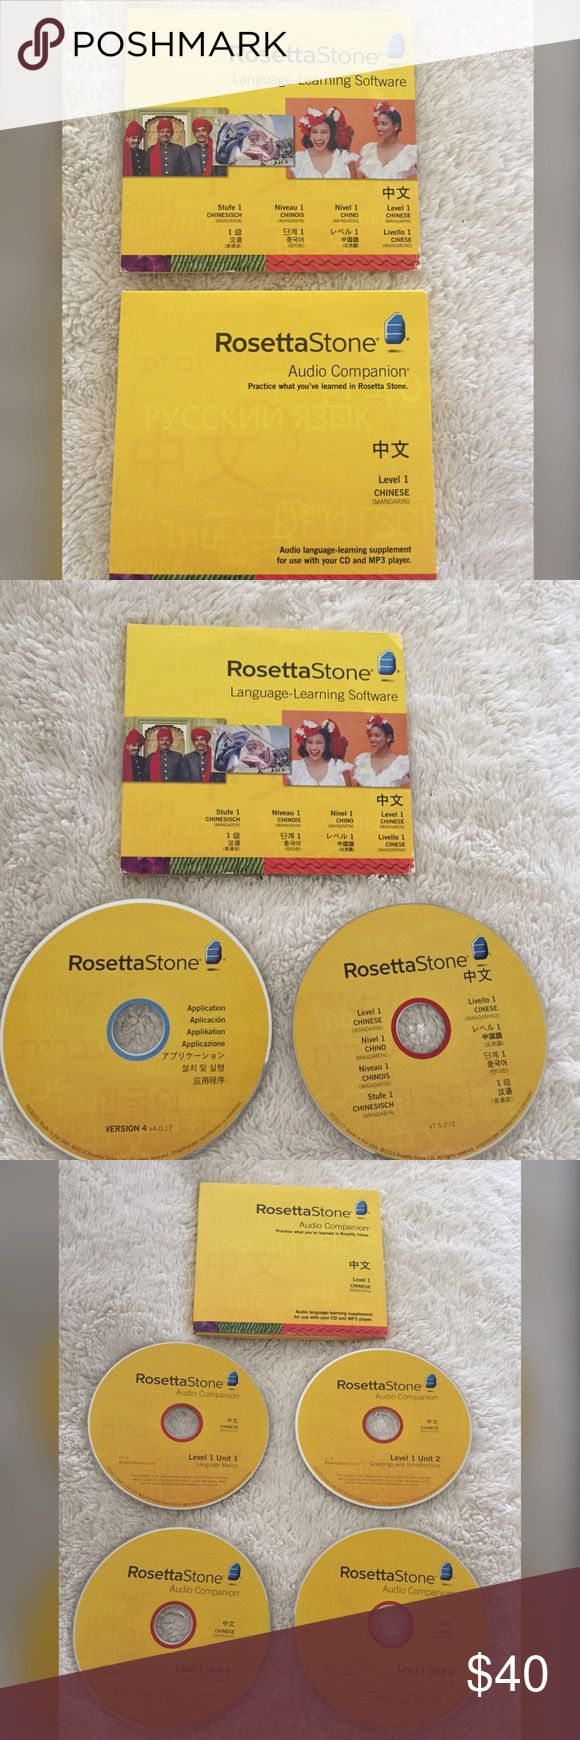 Rosetta Stone Chinese (Mandarin) Rosetta Stone learn Chinese (Mandarin) Level 1 DVD series. Includes the language learning software: 2 DVDs 1. Application and Level 1 Chinese DVD. Other set has the Level 1 Audio Companion with 4 DVDs: Unit 1 language basics. Unit 2 greetings & introductions. Unit 3 work & school. Unit 4 shopping. Mild wear to the bottom right corner of the language learning software cover. Otherwise perfect condition. Open to reasonable offers. Rosetta Stone Other